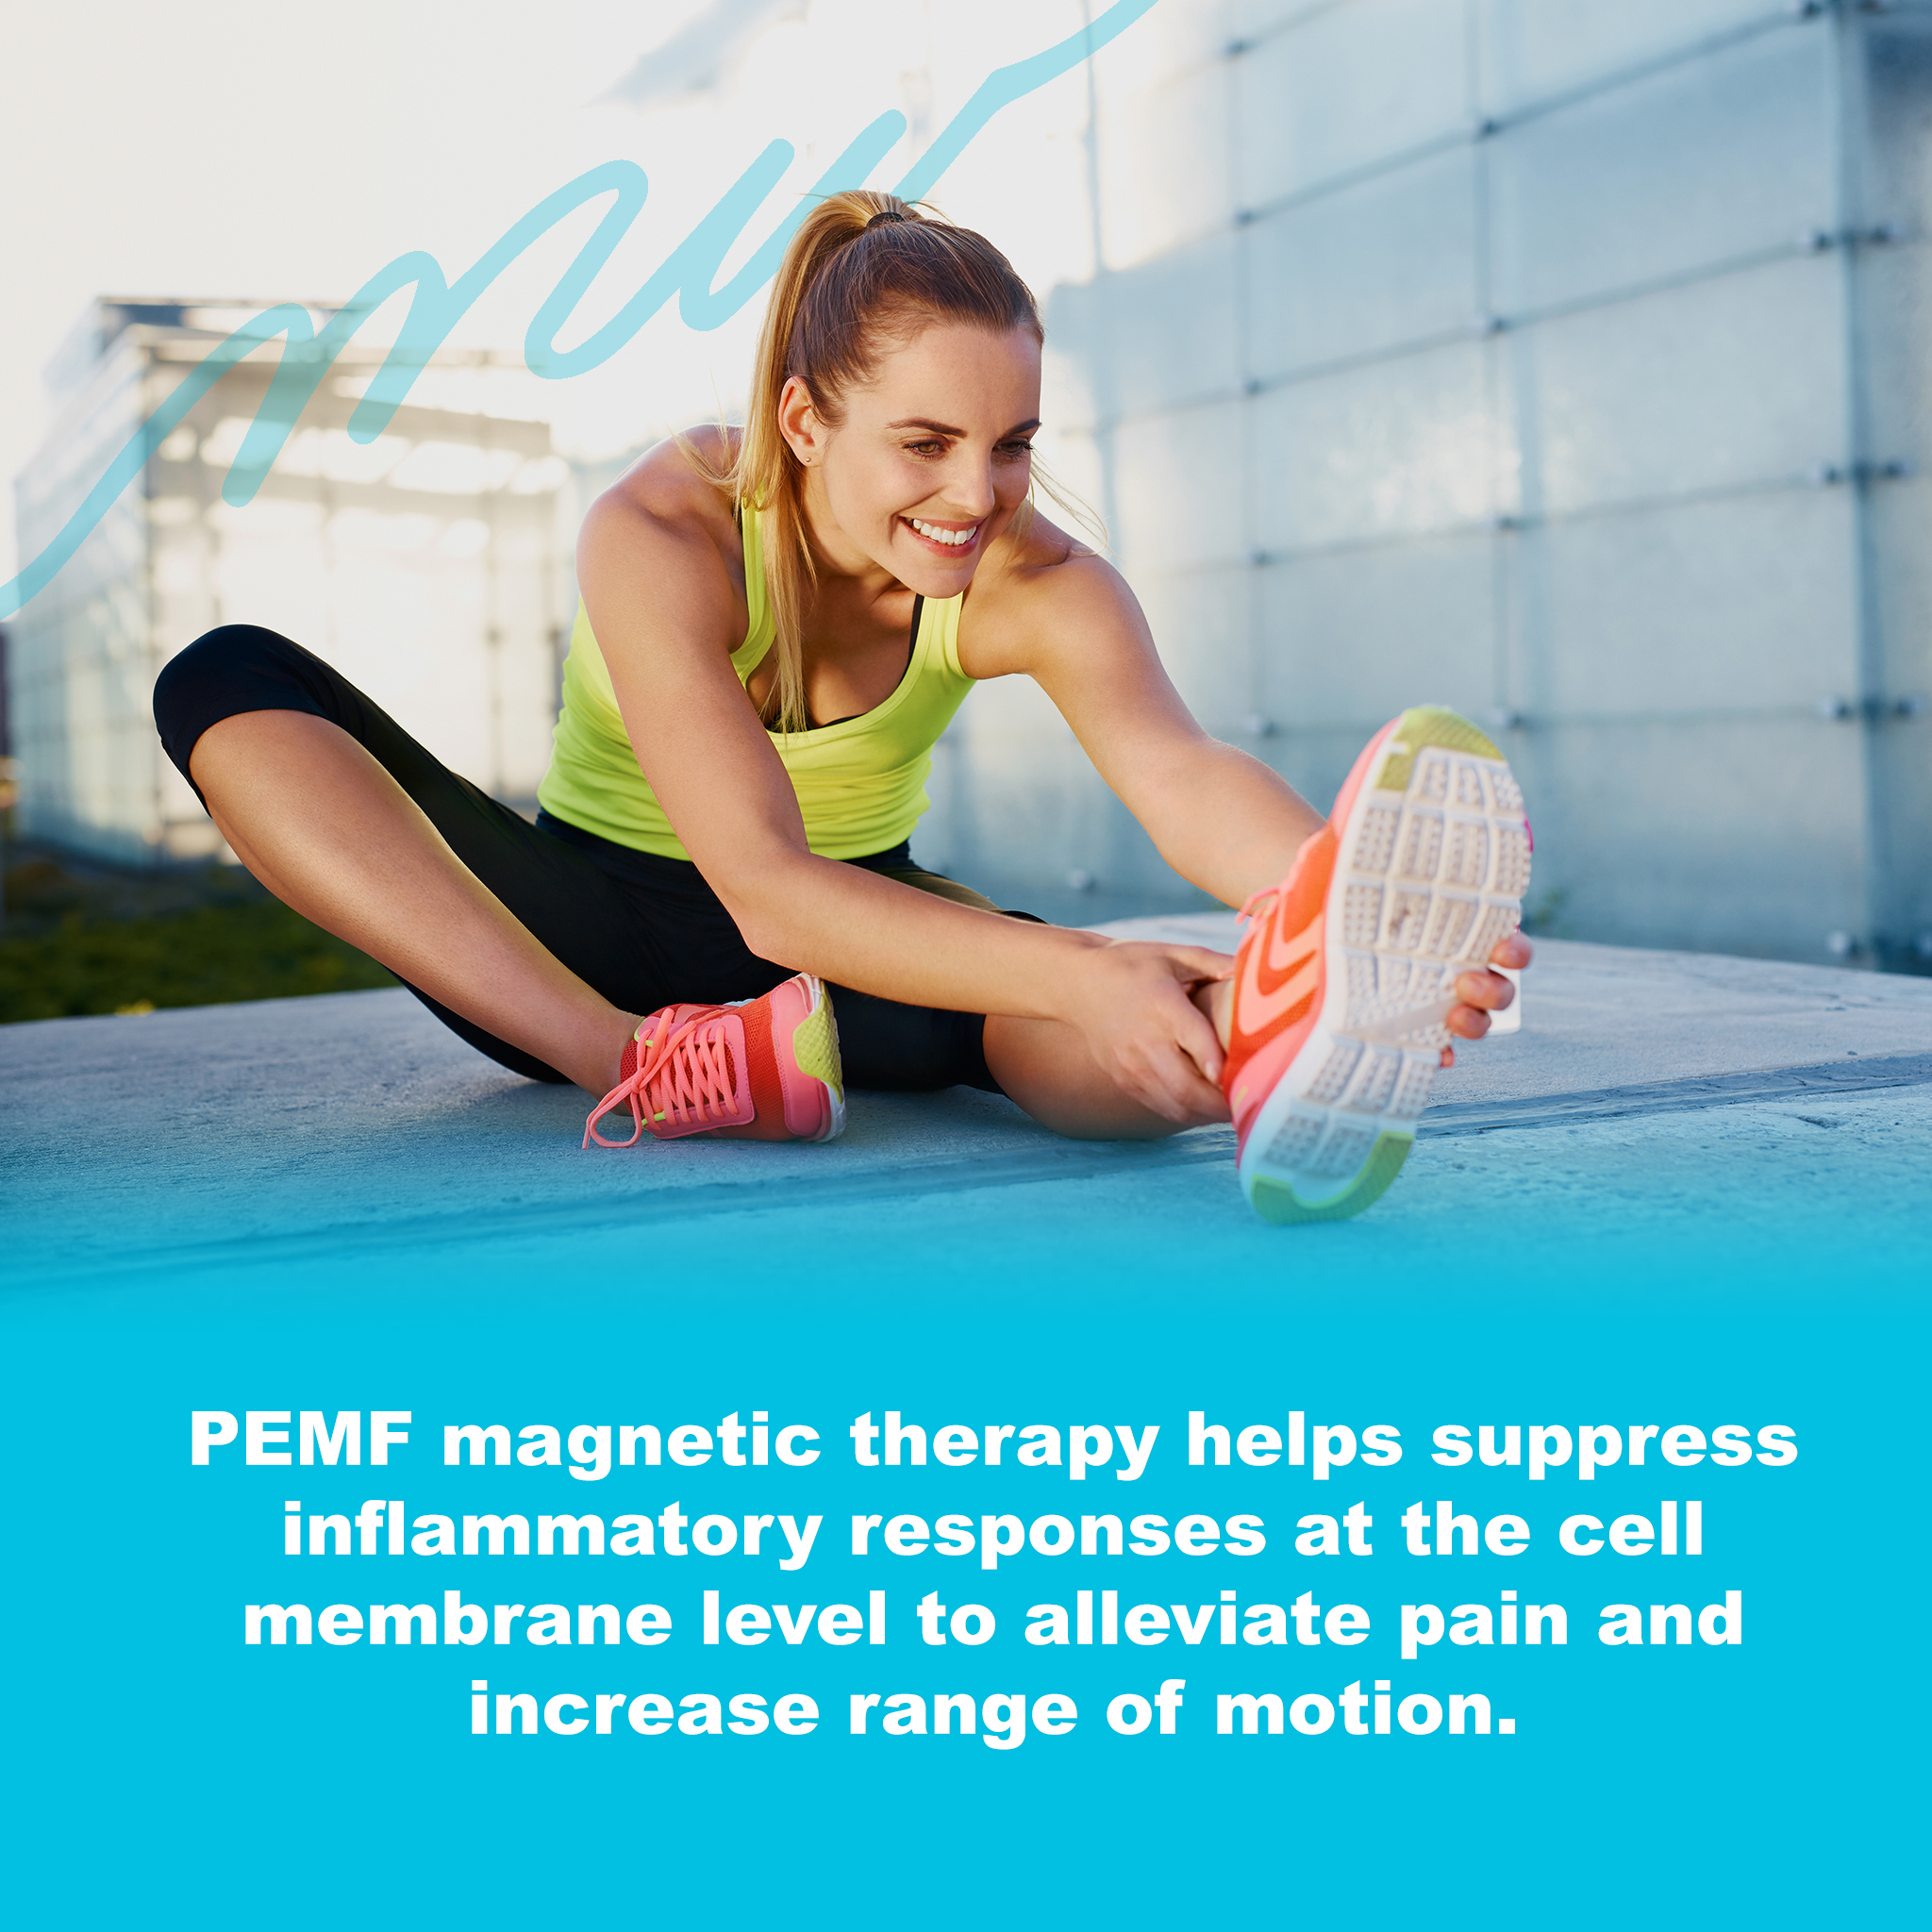 PEMF Magnetic therapy helps suppress inflammatory responses at the cell membrane level to alleviate pain and increase range of motion.